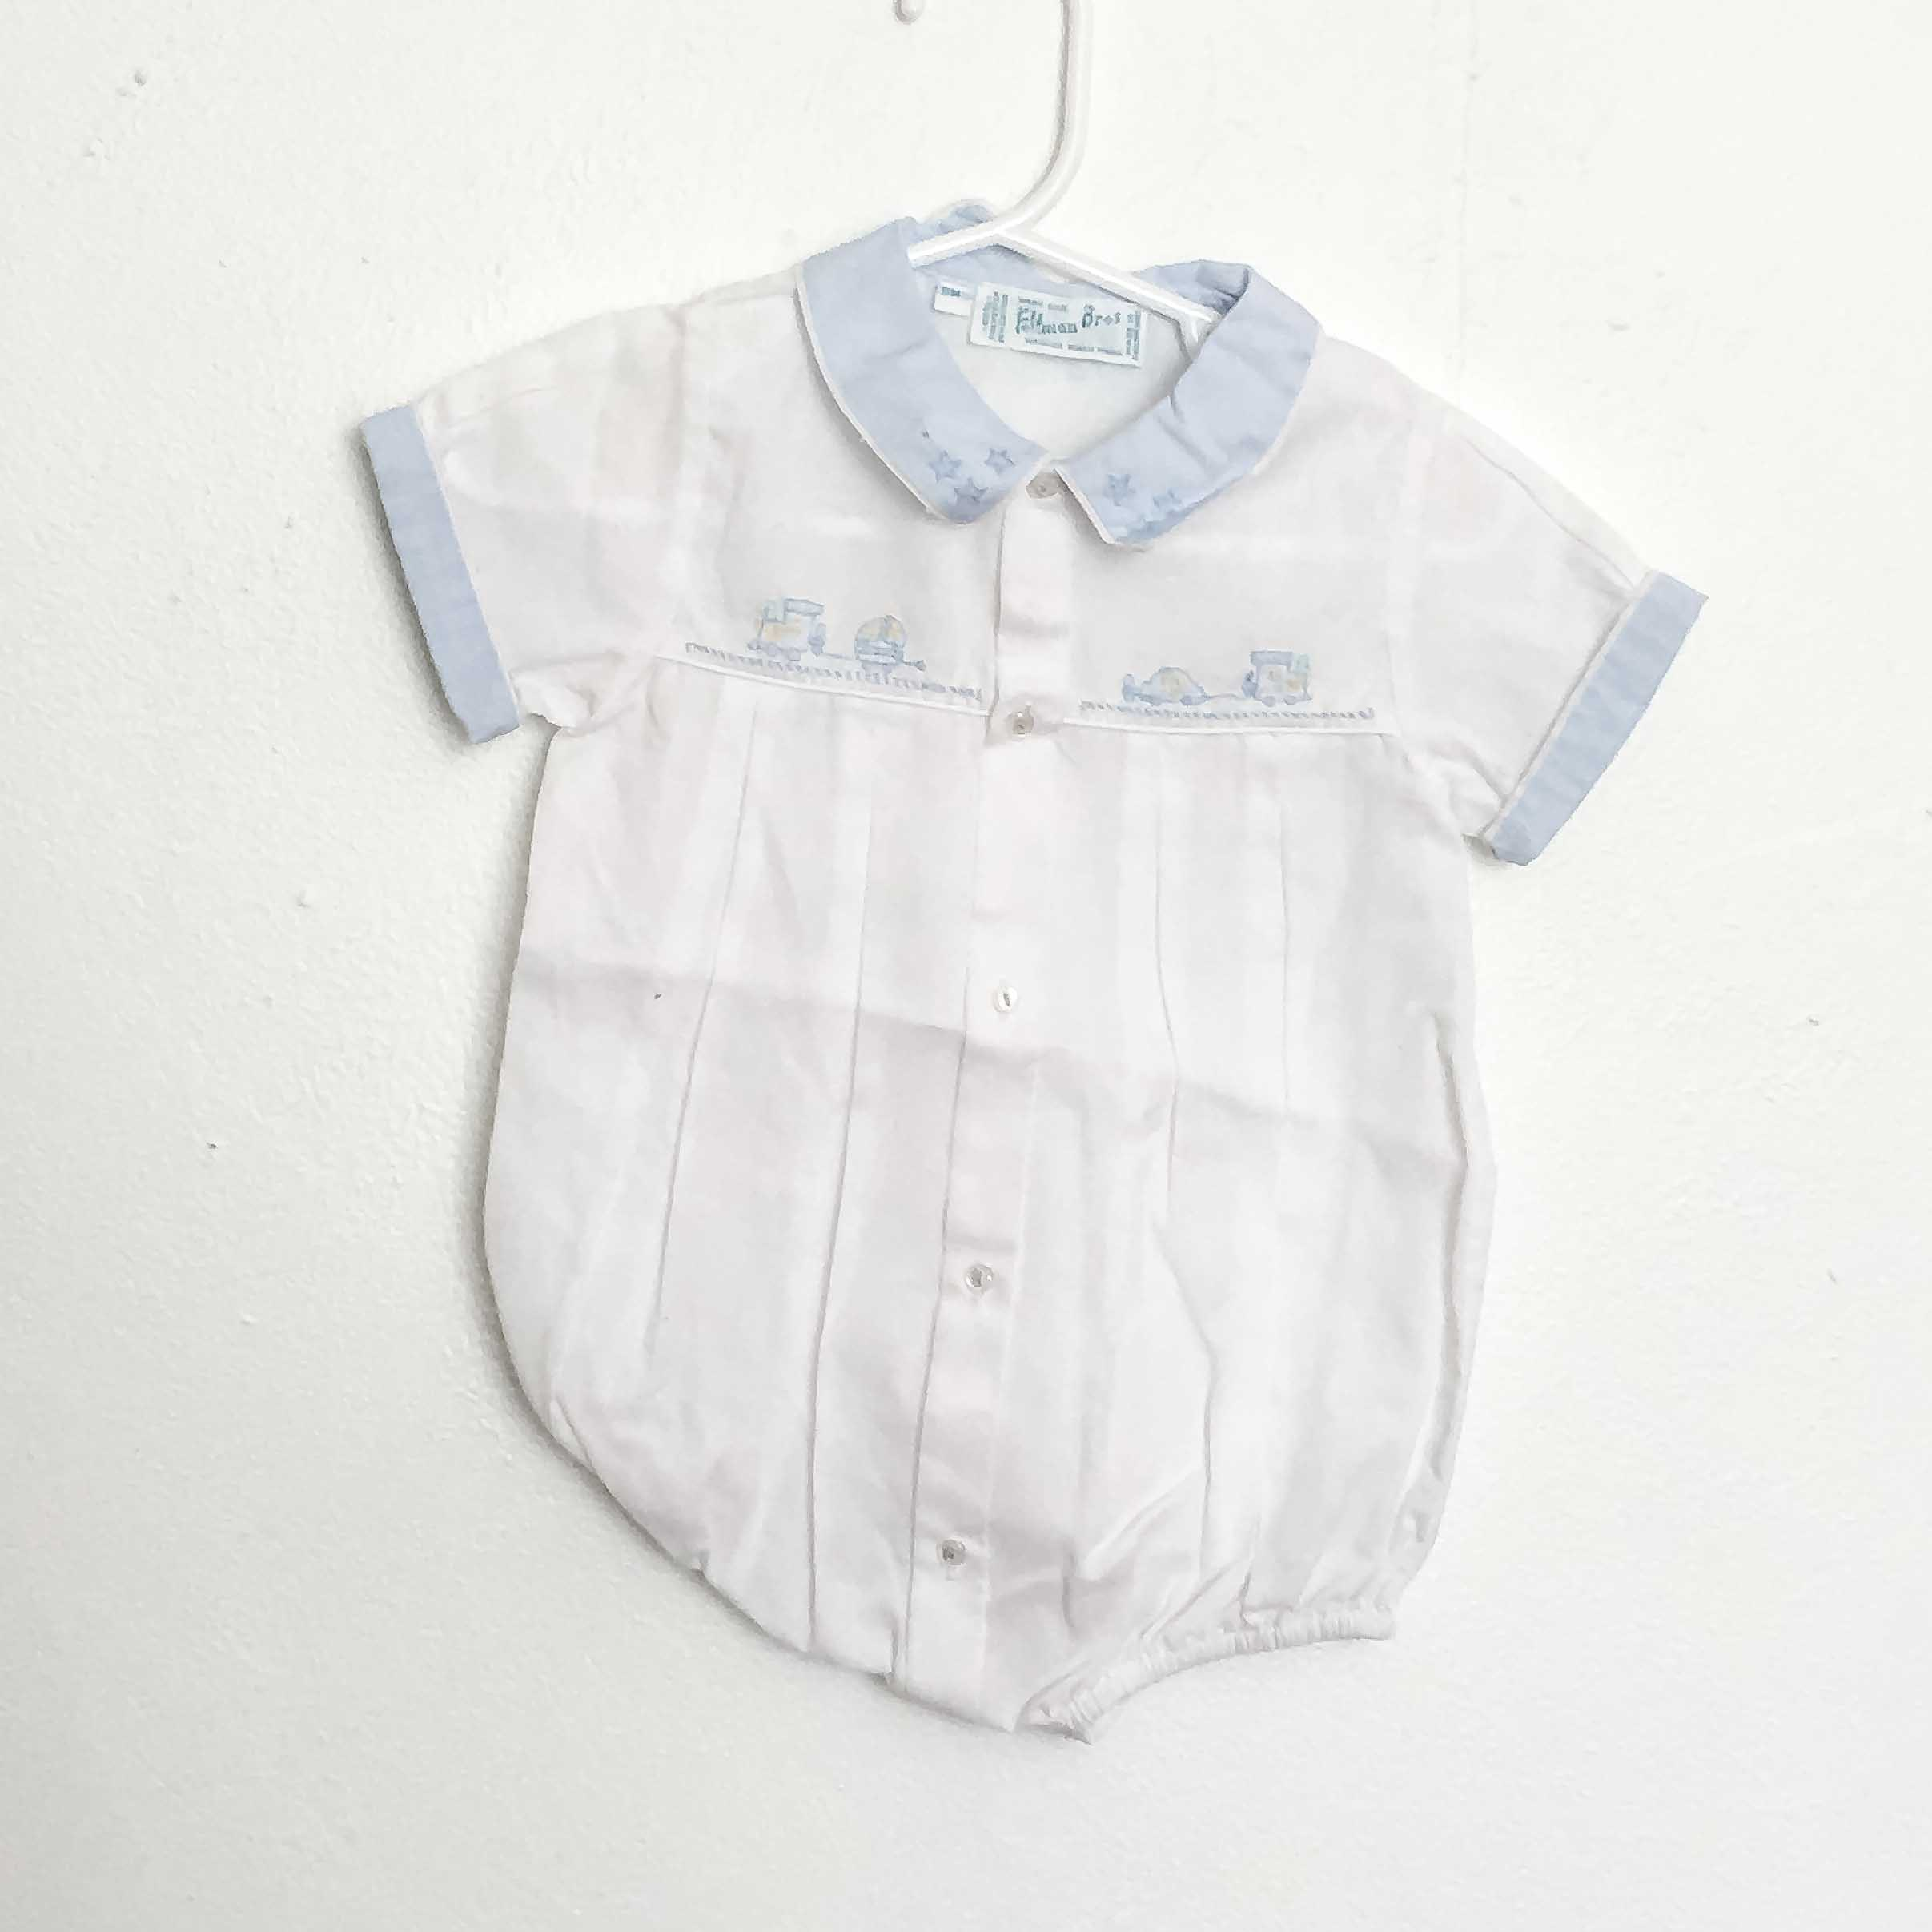 ORPCLOTHES-73.jpg